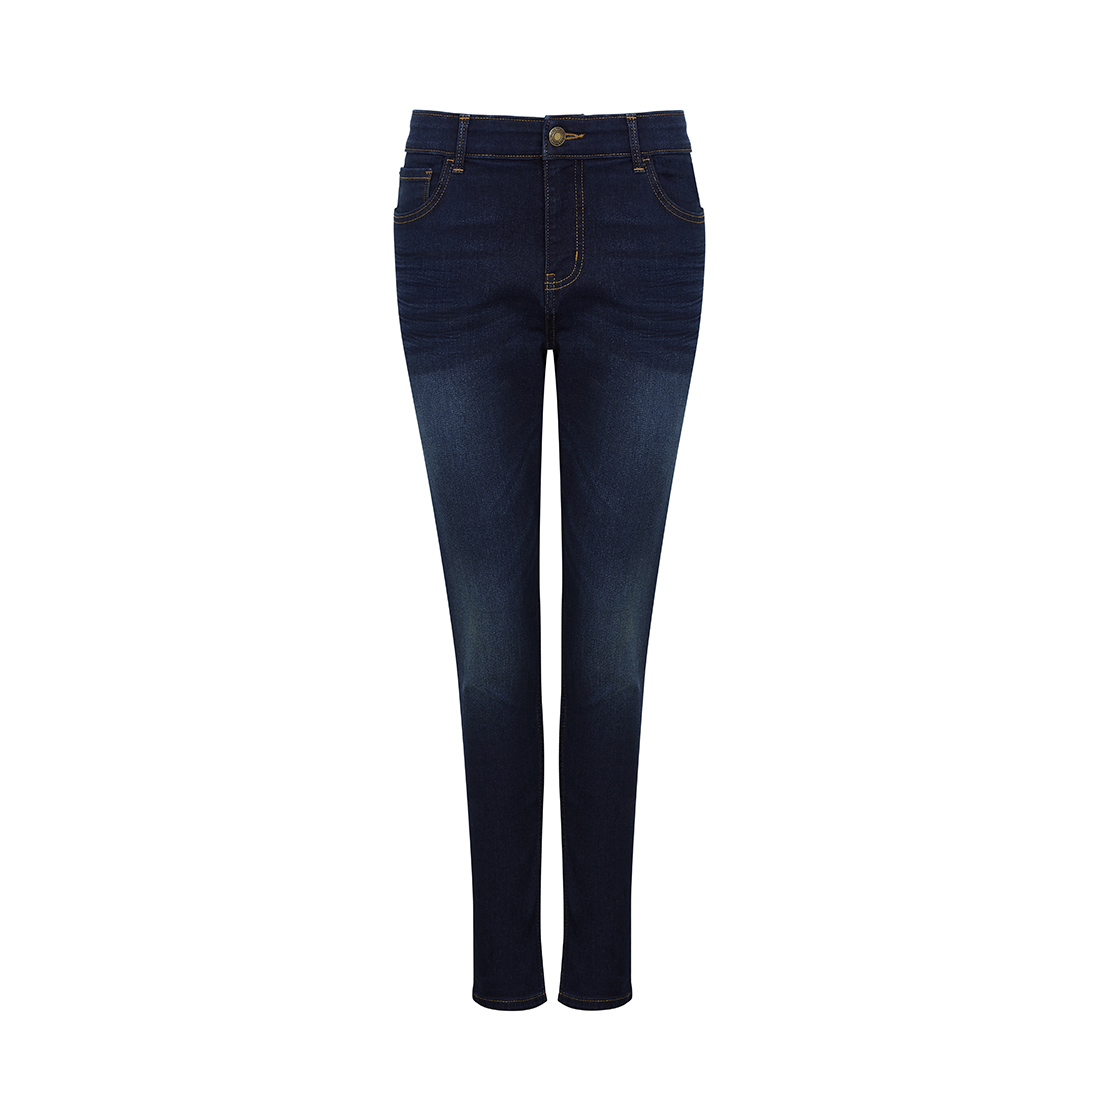 Jeans, £19.50